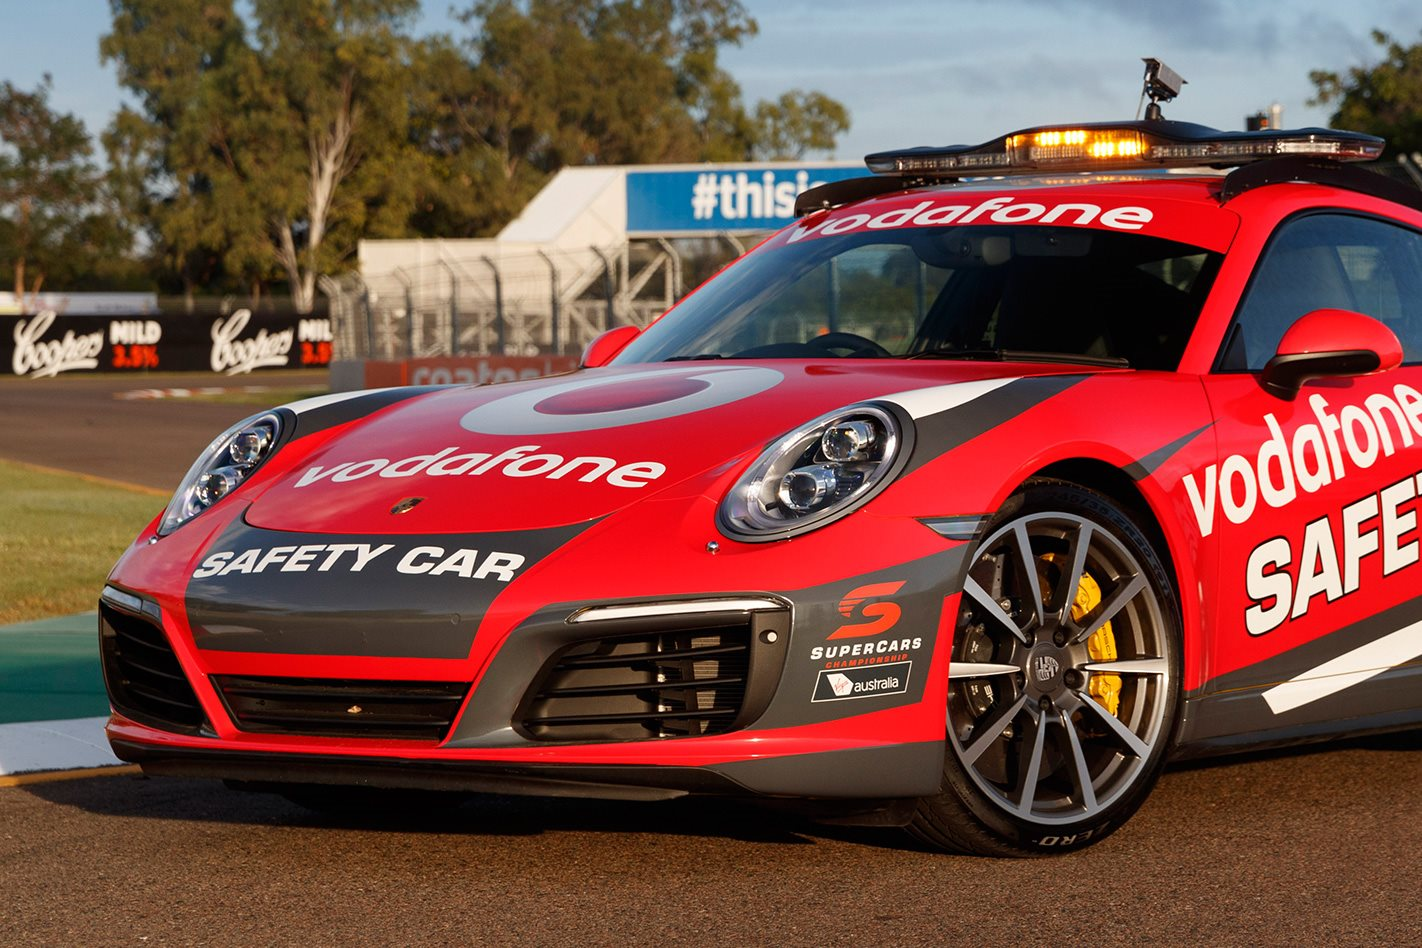 Porsche unveils 911 Carrera 4S Safety Car front